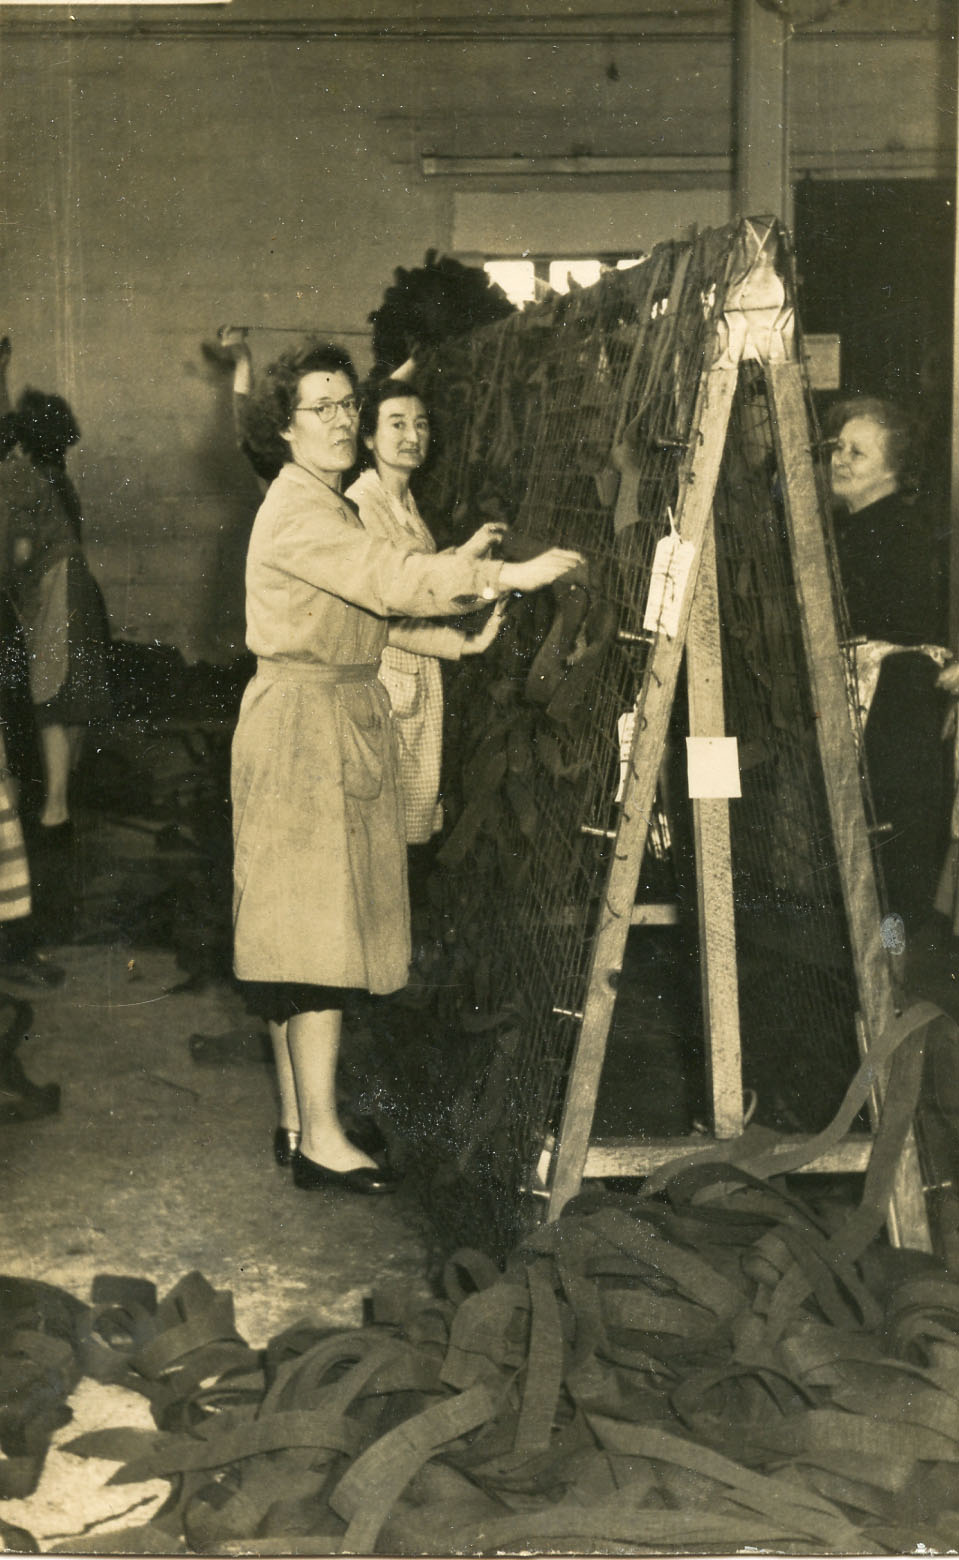 Women making camouflage nets at Hamptons factory on The Island, St Ives, during World War 2 (credit: St Ives Archive)